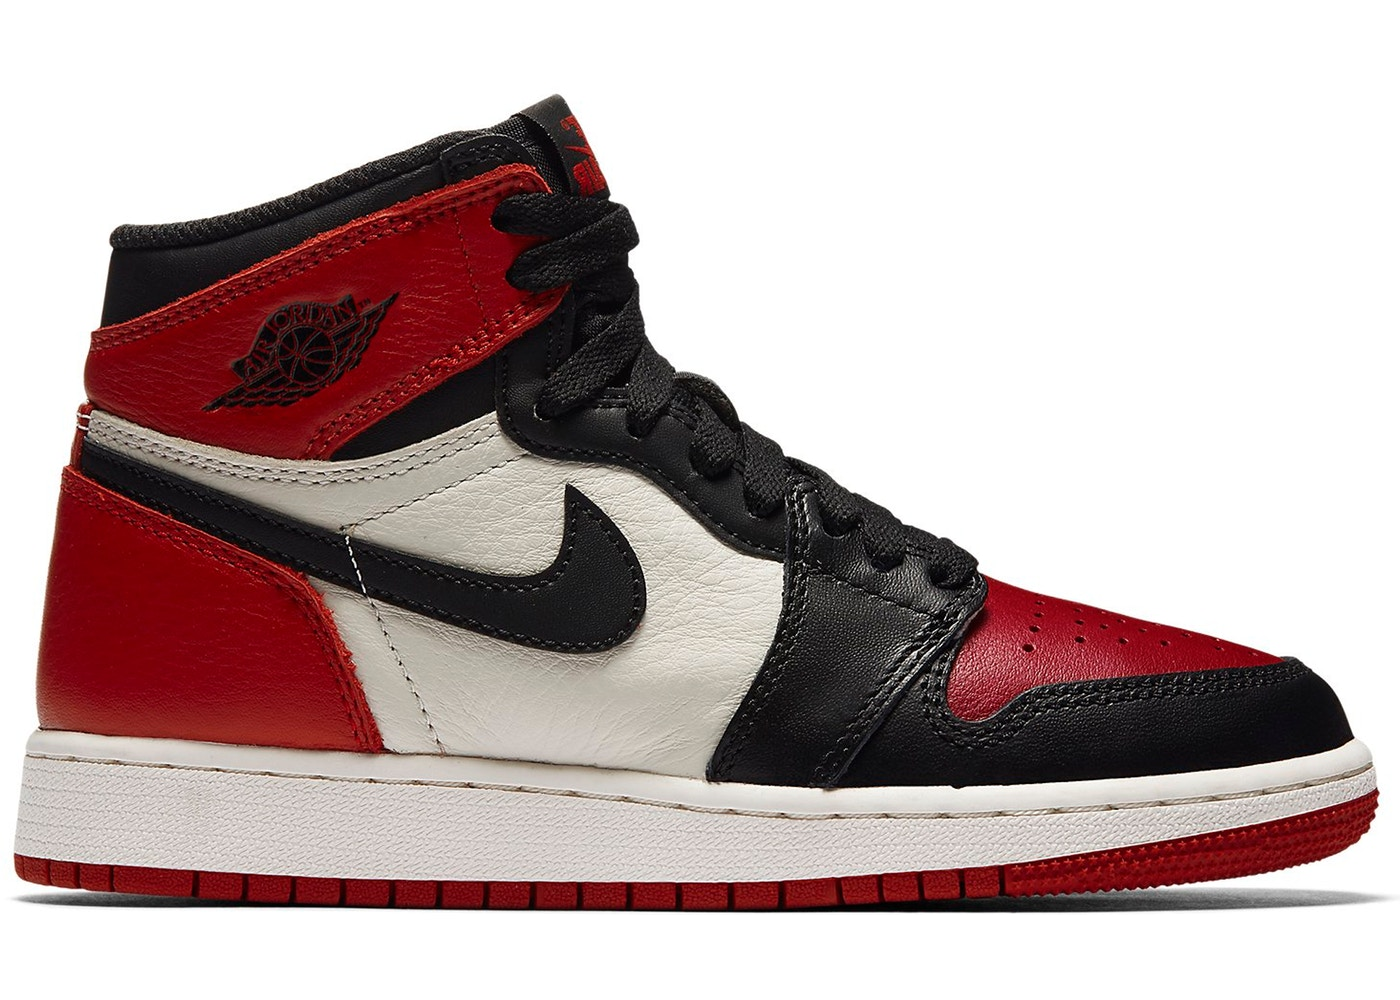 2f785d43cbf Jordan 1 Retro High Bred Toe (GS) - 575441-610